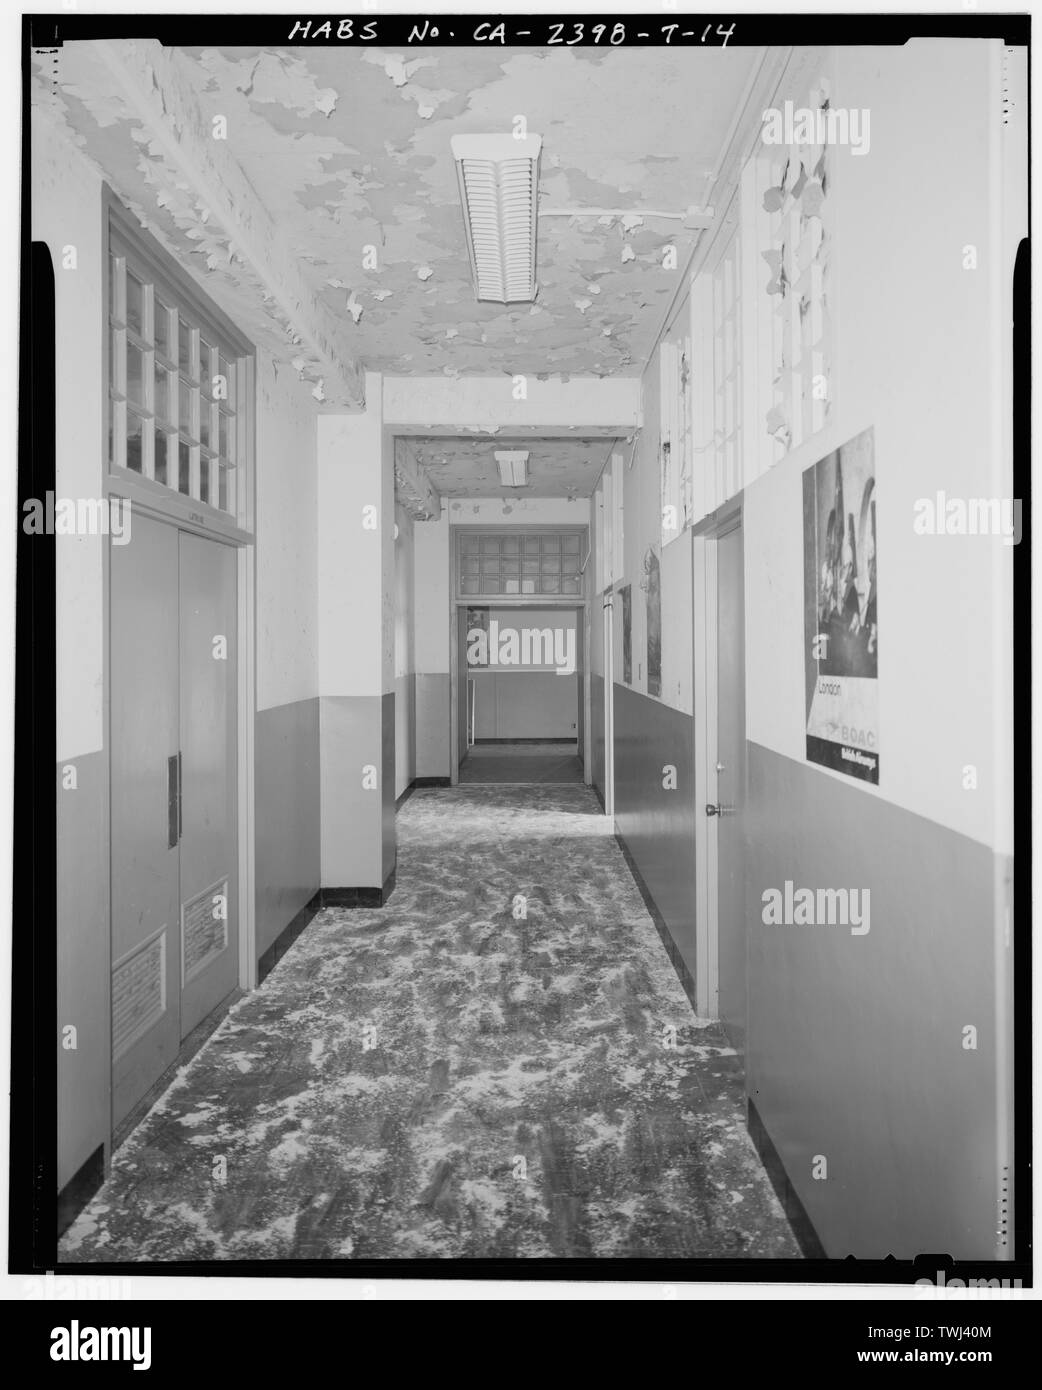 Second floor long axis hallway, showing transoms. Latrine at left. - Hamilton Field, Air Corps Dormitories, Fifth and Sixth Streets between Escolta and Hangar Avenues, Novato, Marin County, CA - Stock Image